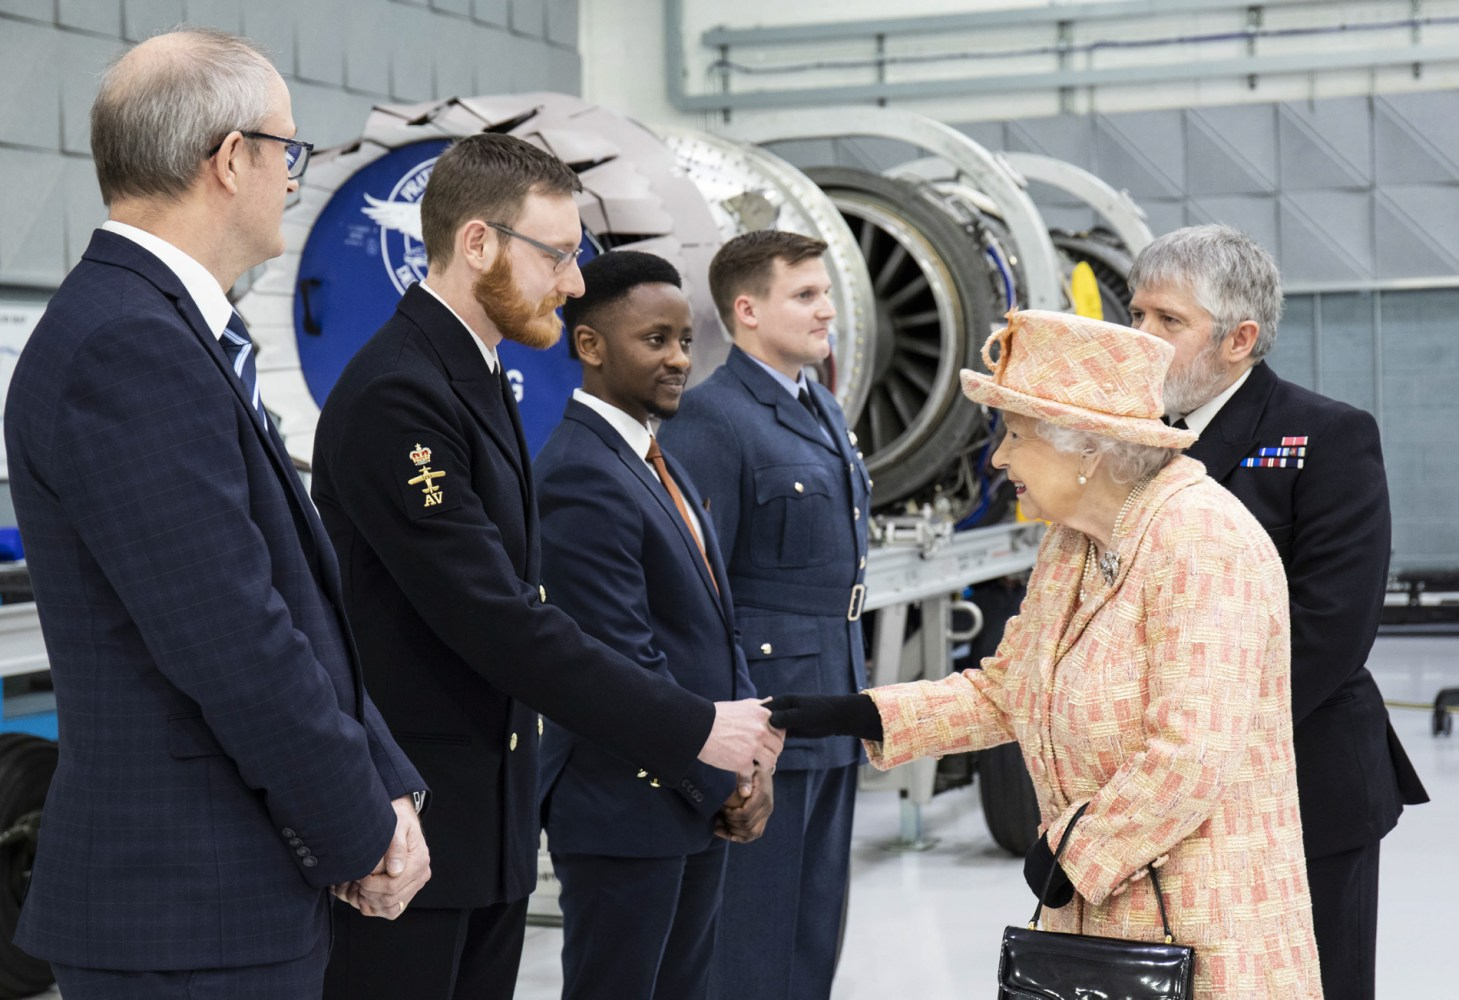 The Queen greeting members of personnel, both serving and civilian in the Integrated Training Centre (ITC) at RAF Marham. (MOD)